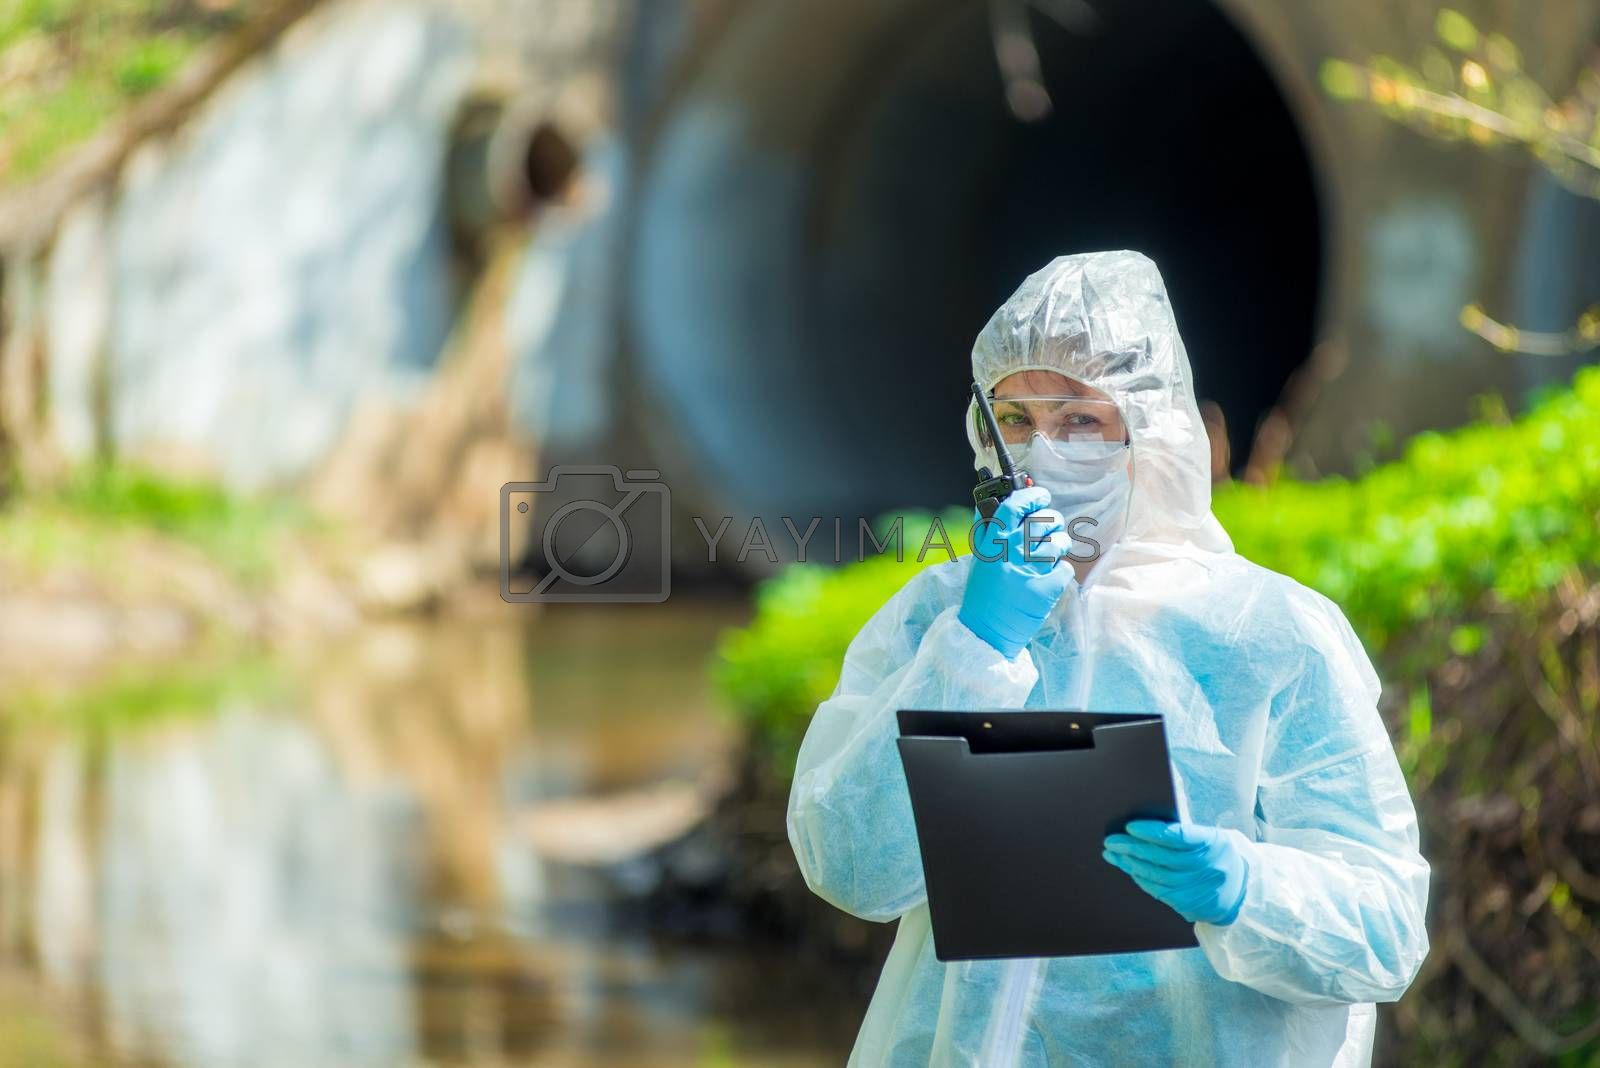 horizontal portrait of a scientist next to a sewer pipe with a walkie-talkie in hand